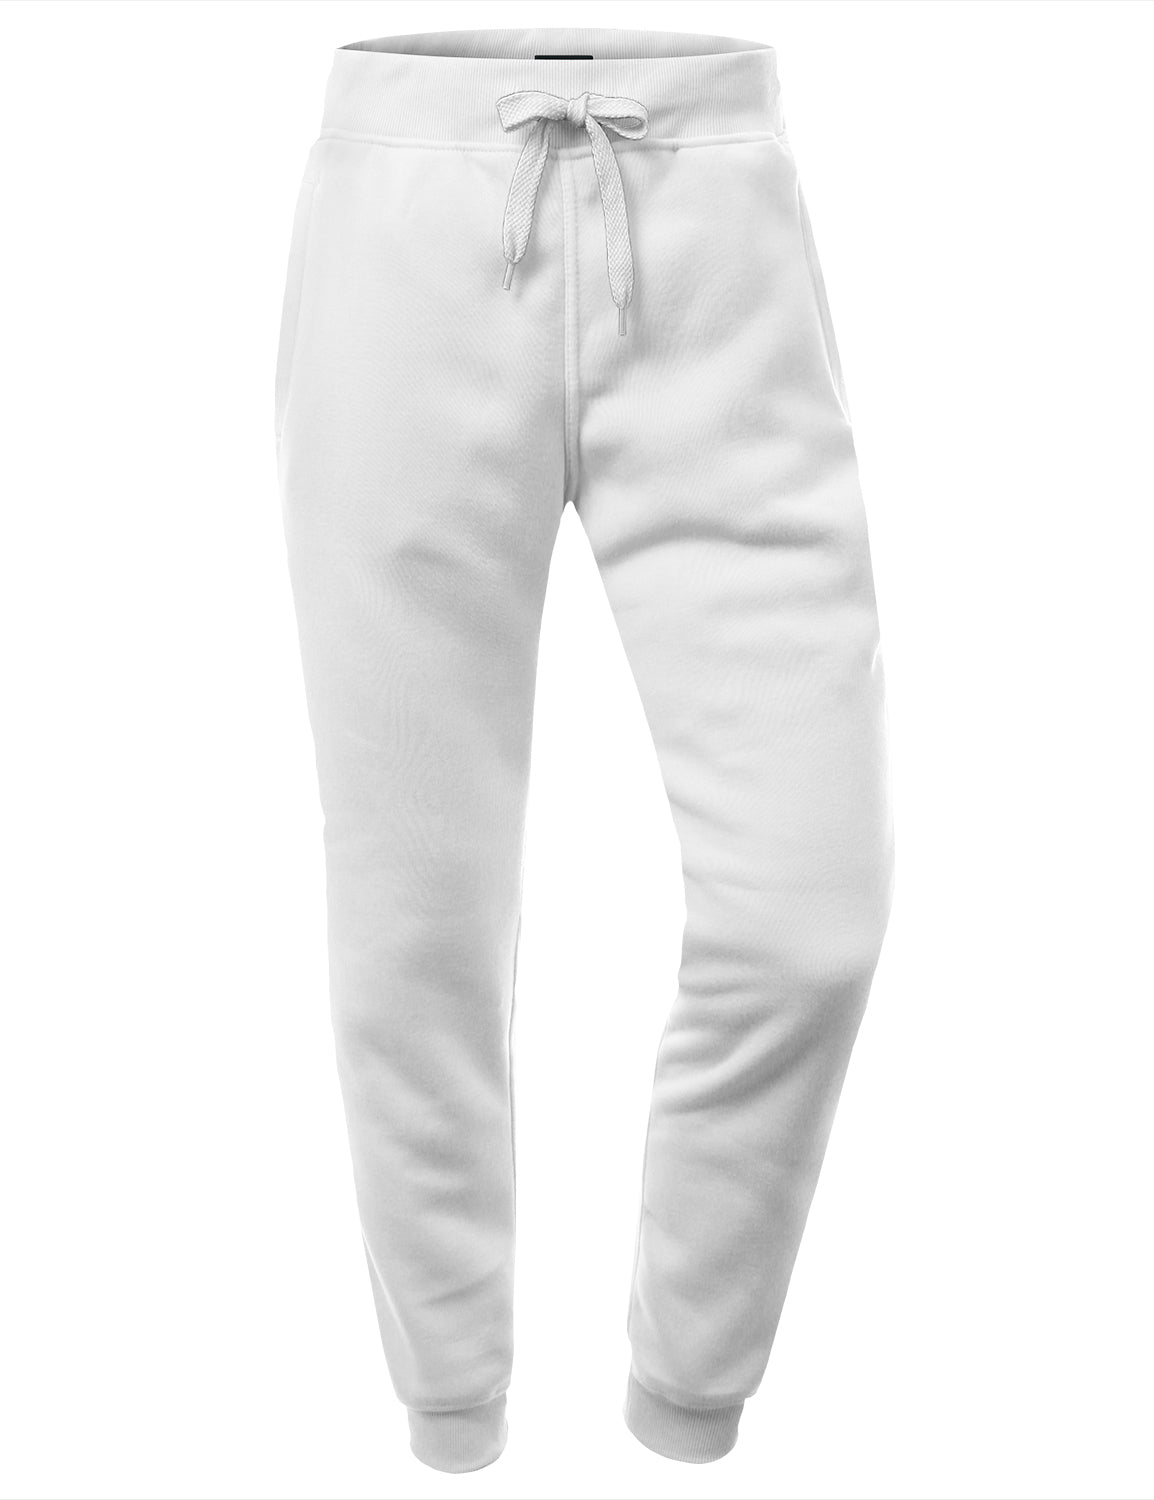 WHITE Basic Fleece Jogger Sweatpants - URBANCREWS